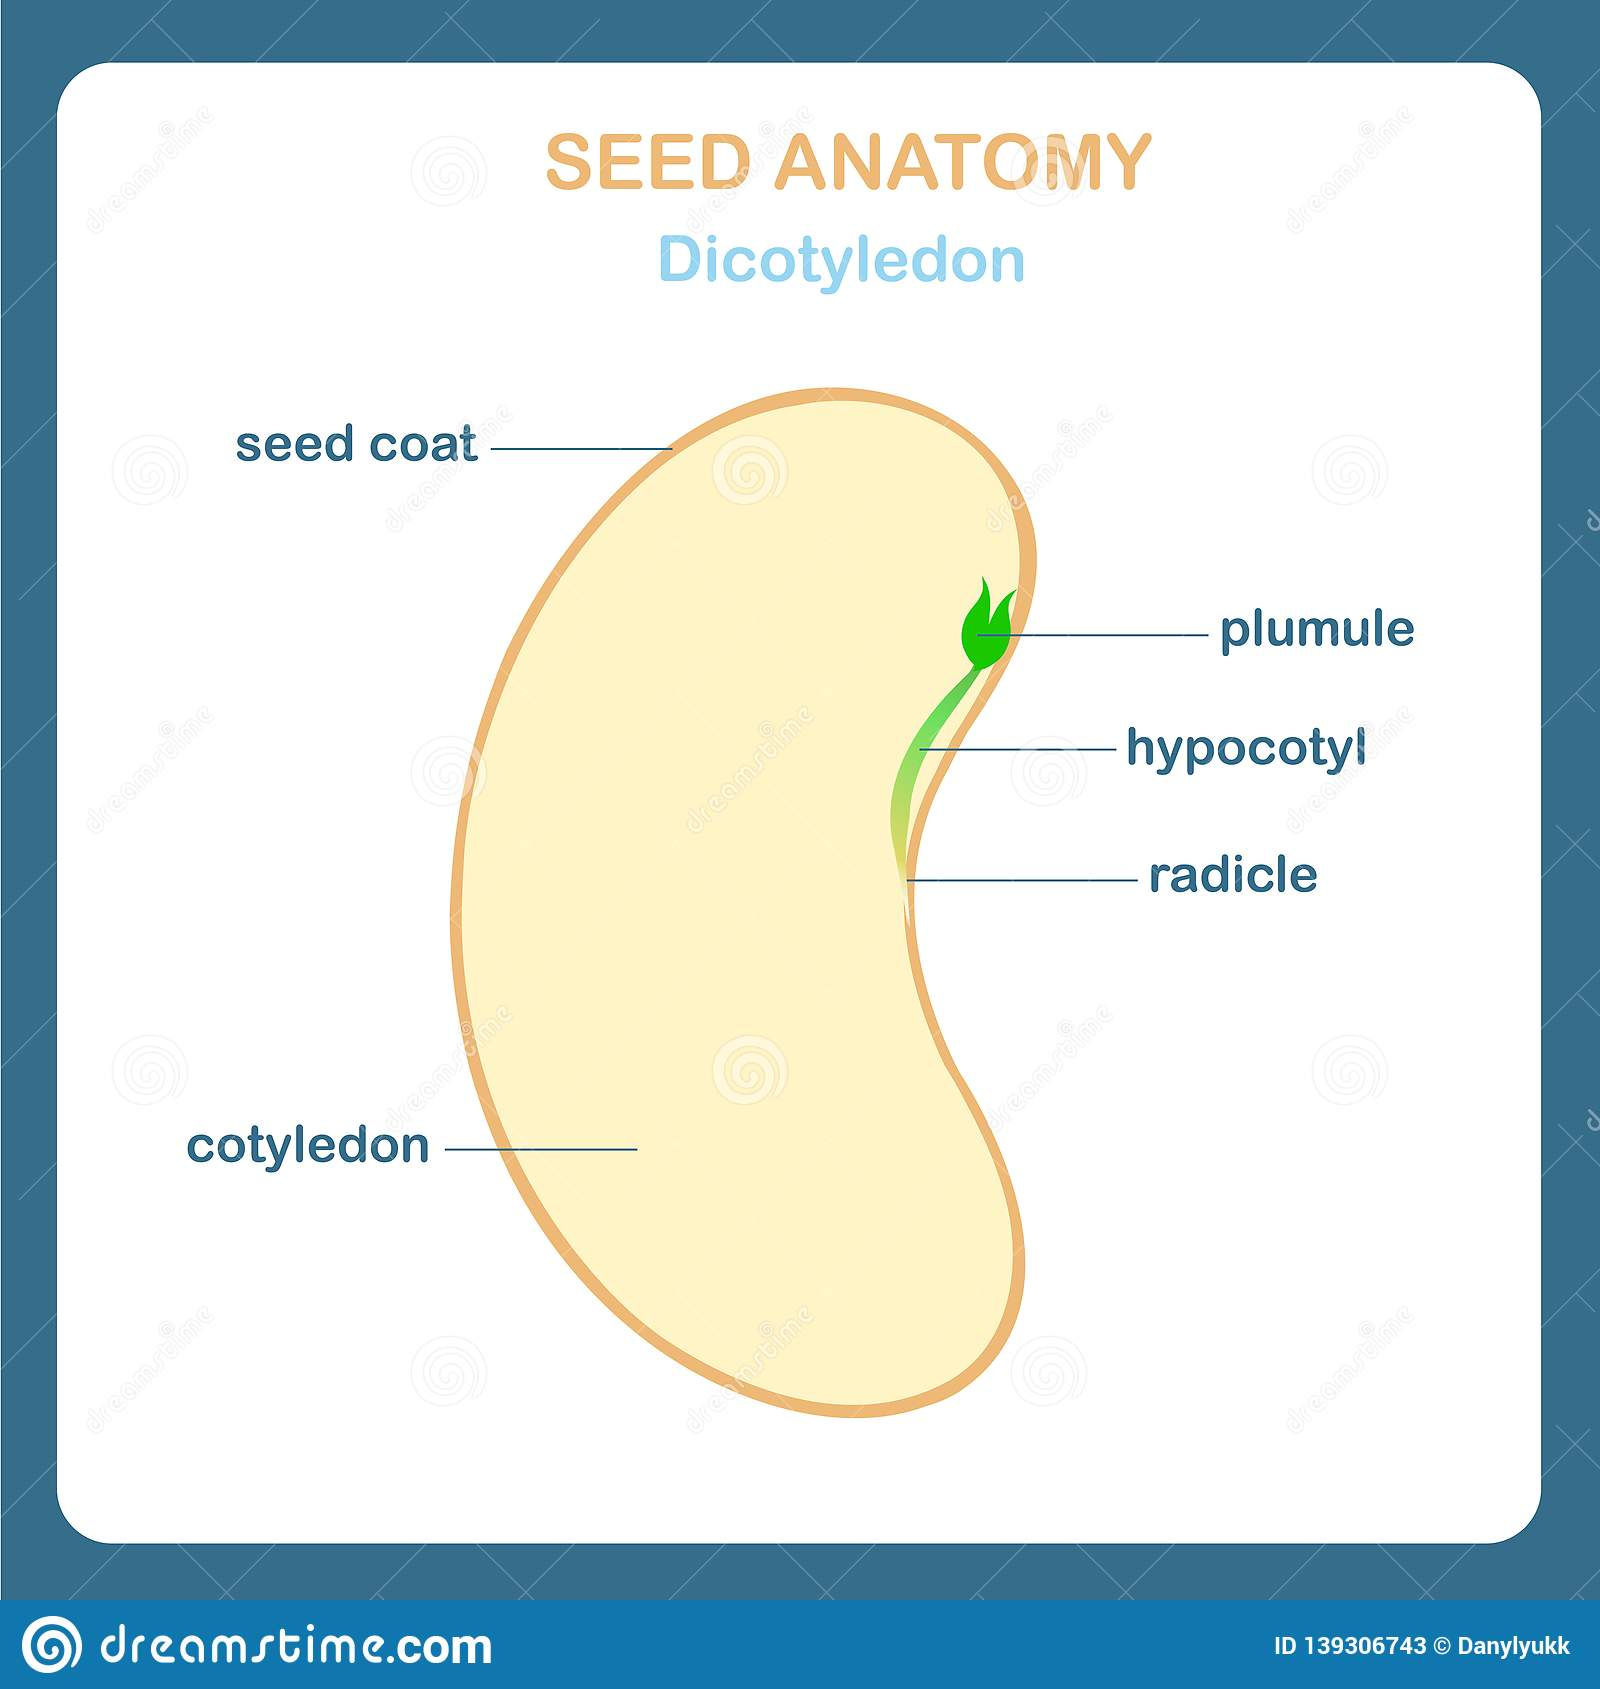 hight resolution of seed anatomy scheme dicotyledon bean seed coat plumule hypocotyl radicle cotyledon design element for education for botany school lesson